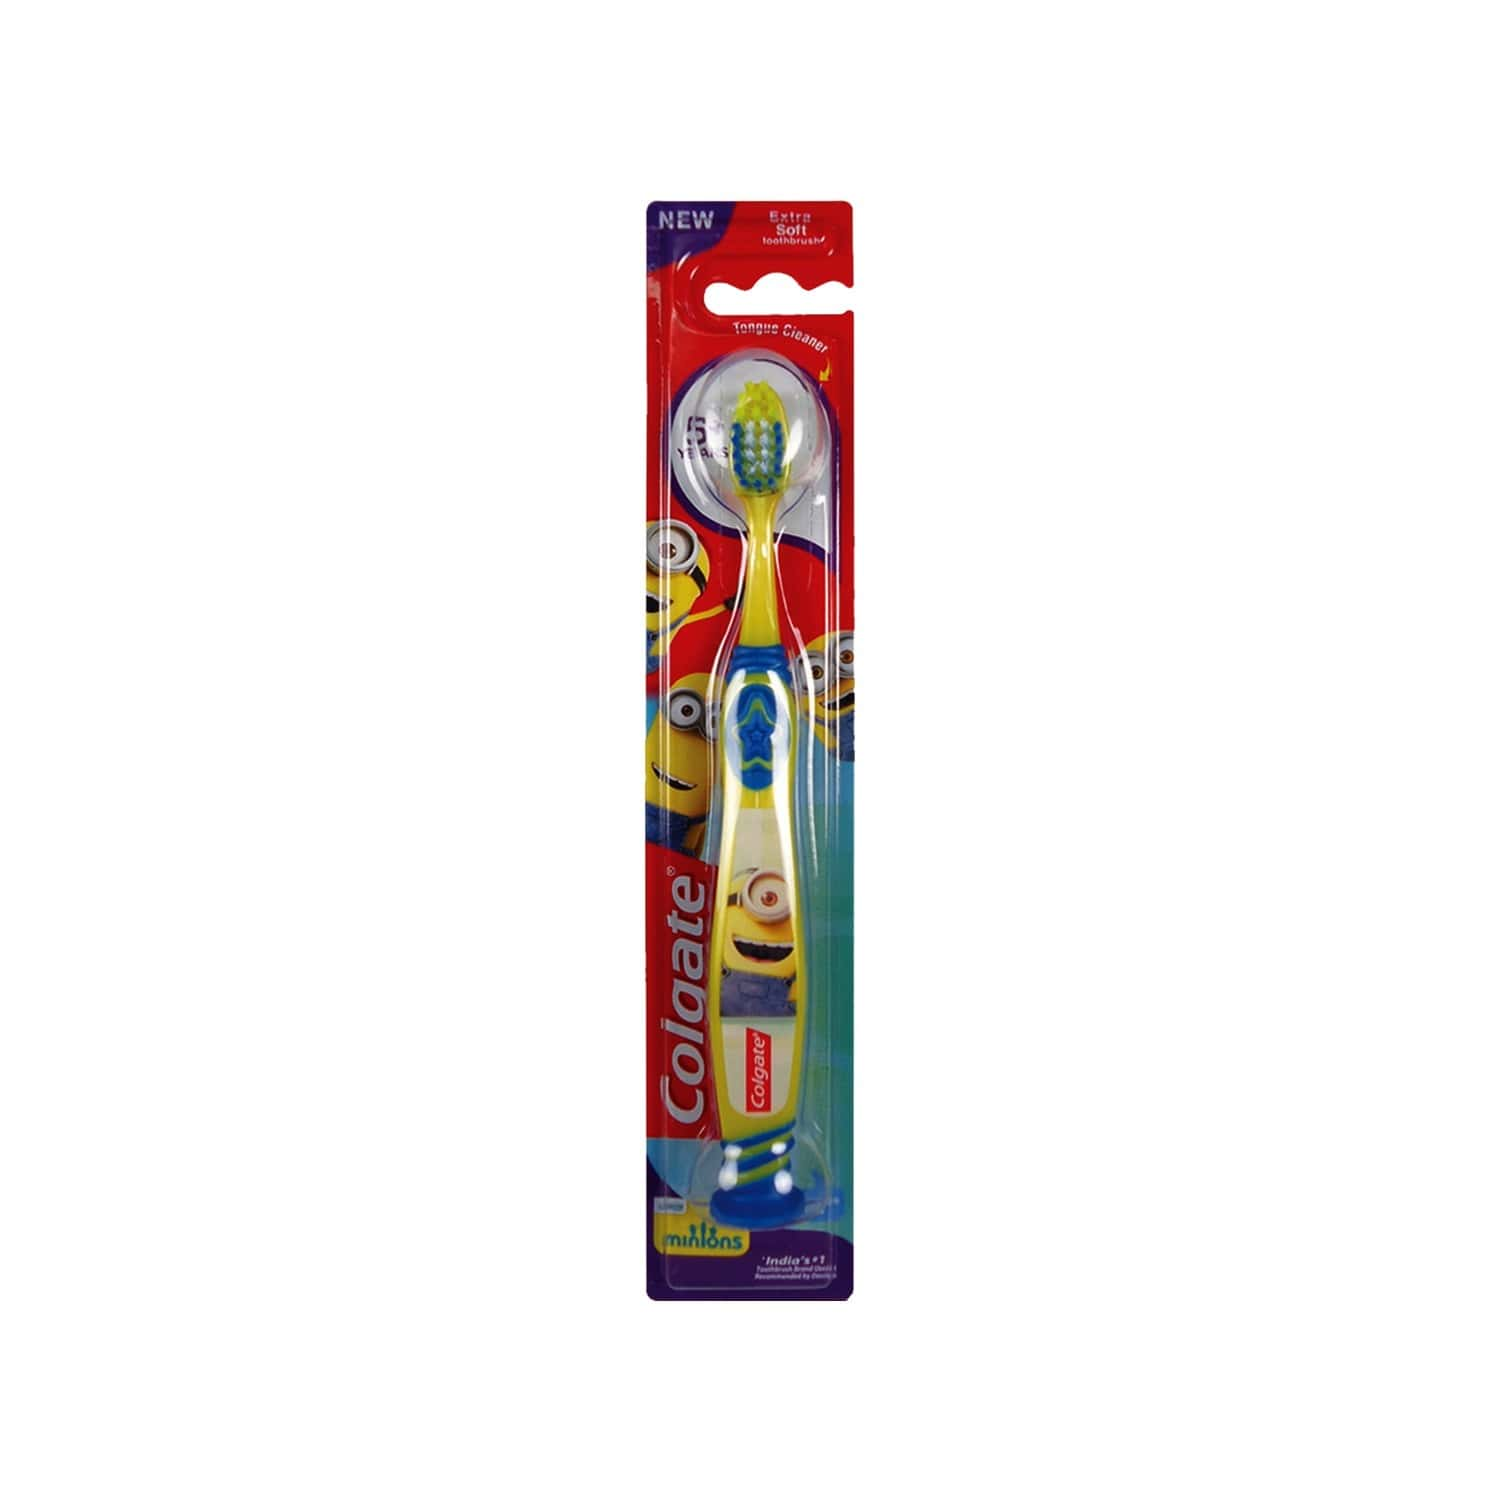 Colgate Kids (5+ Years) Minion Toothbrush, Extra Soft With Tongue Cleaner - 1 Pc